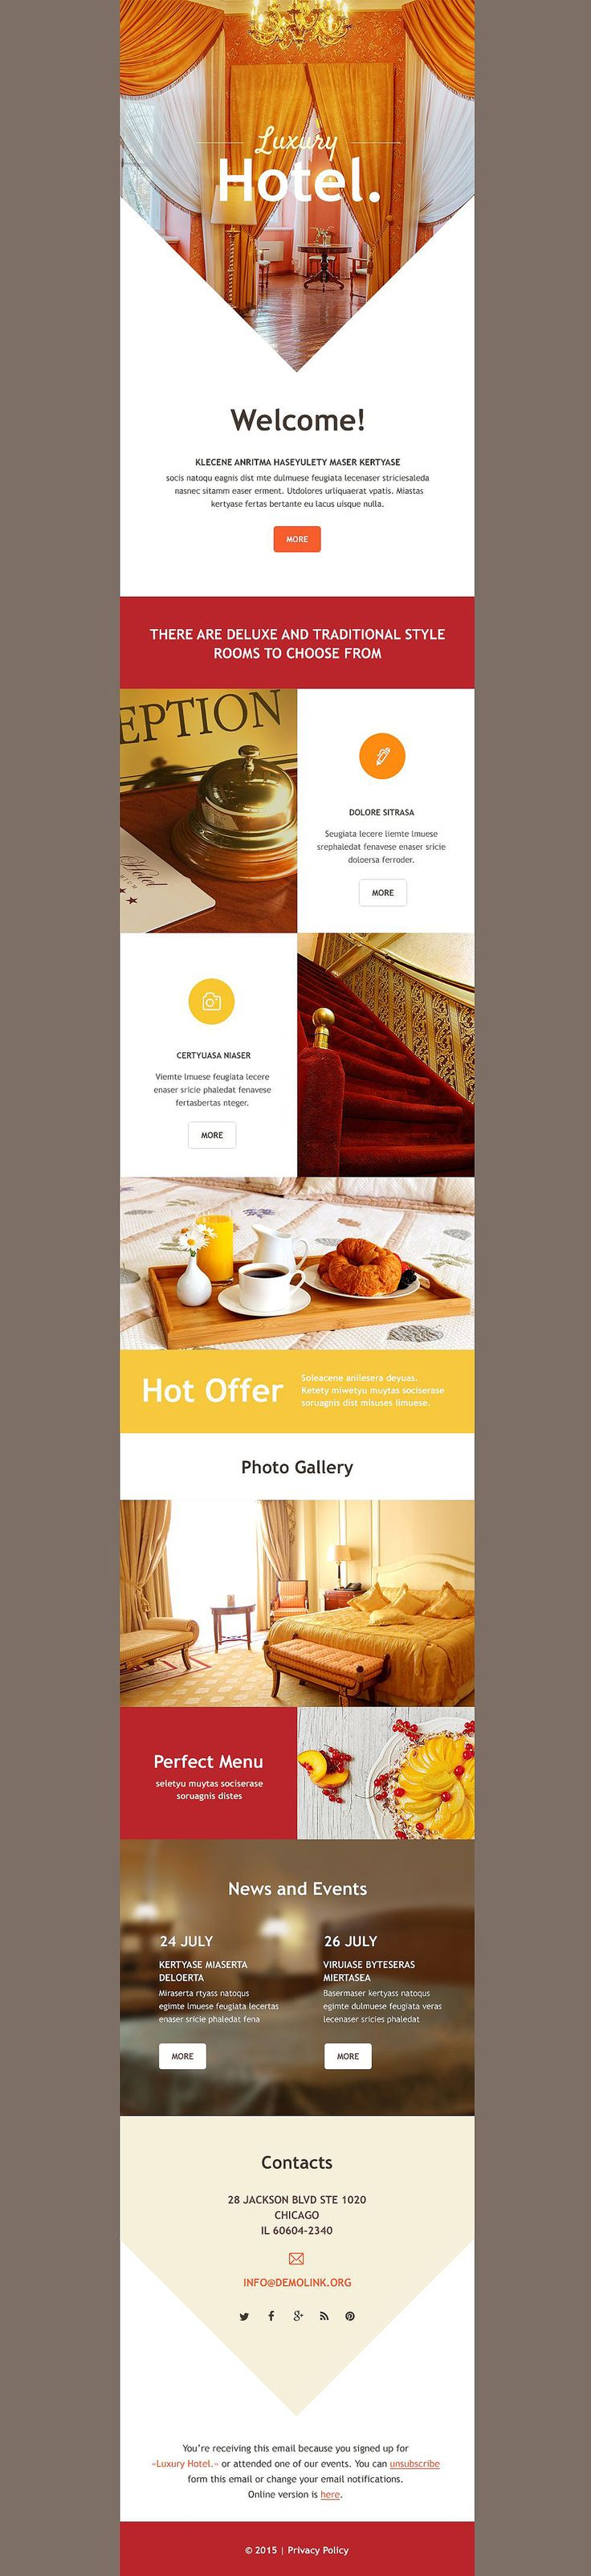 Hotels Responsive Newsletter Template #54740 …